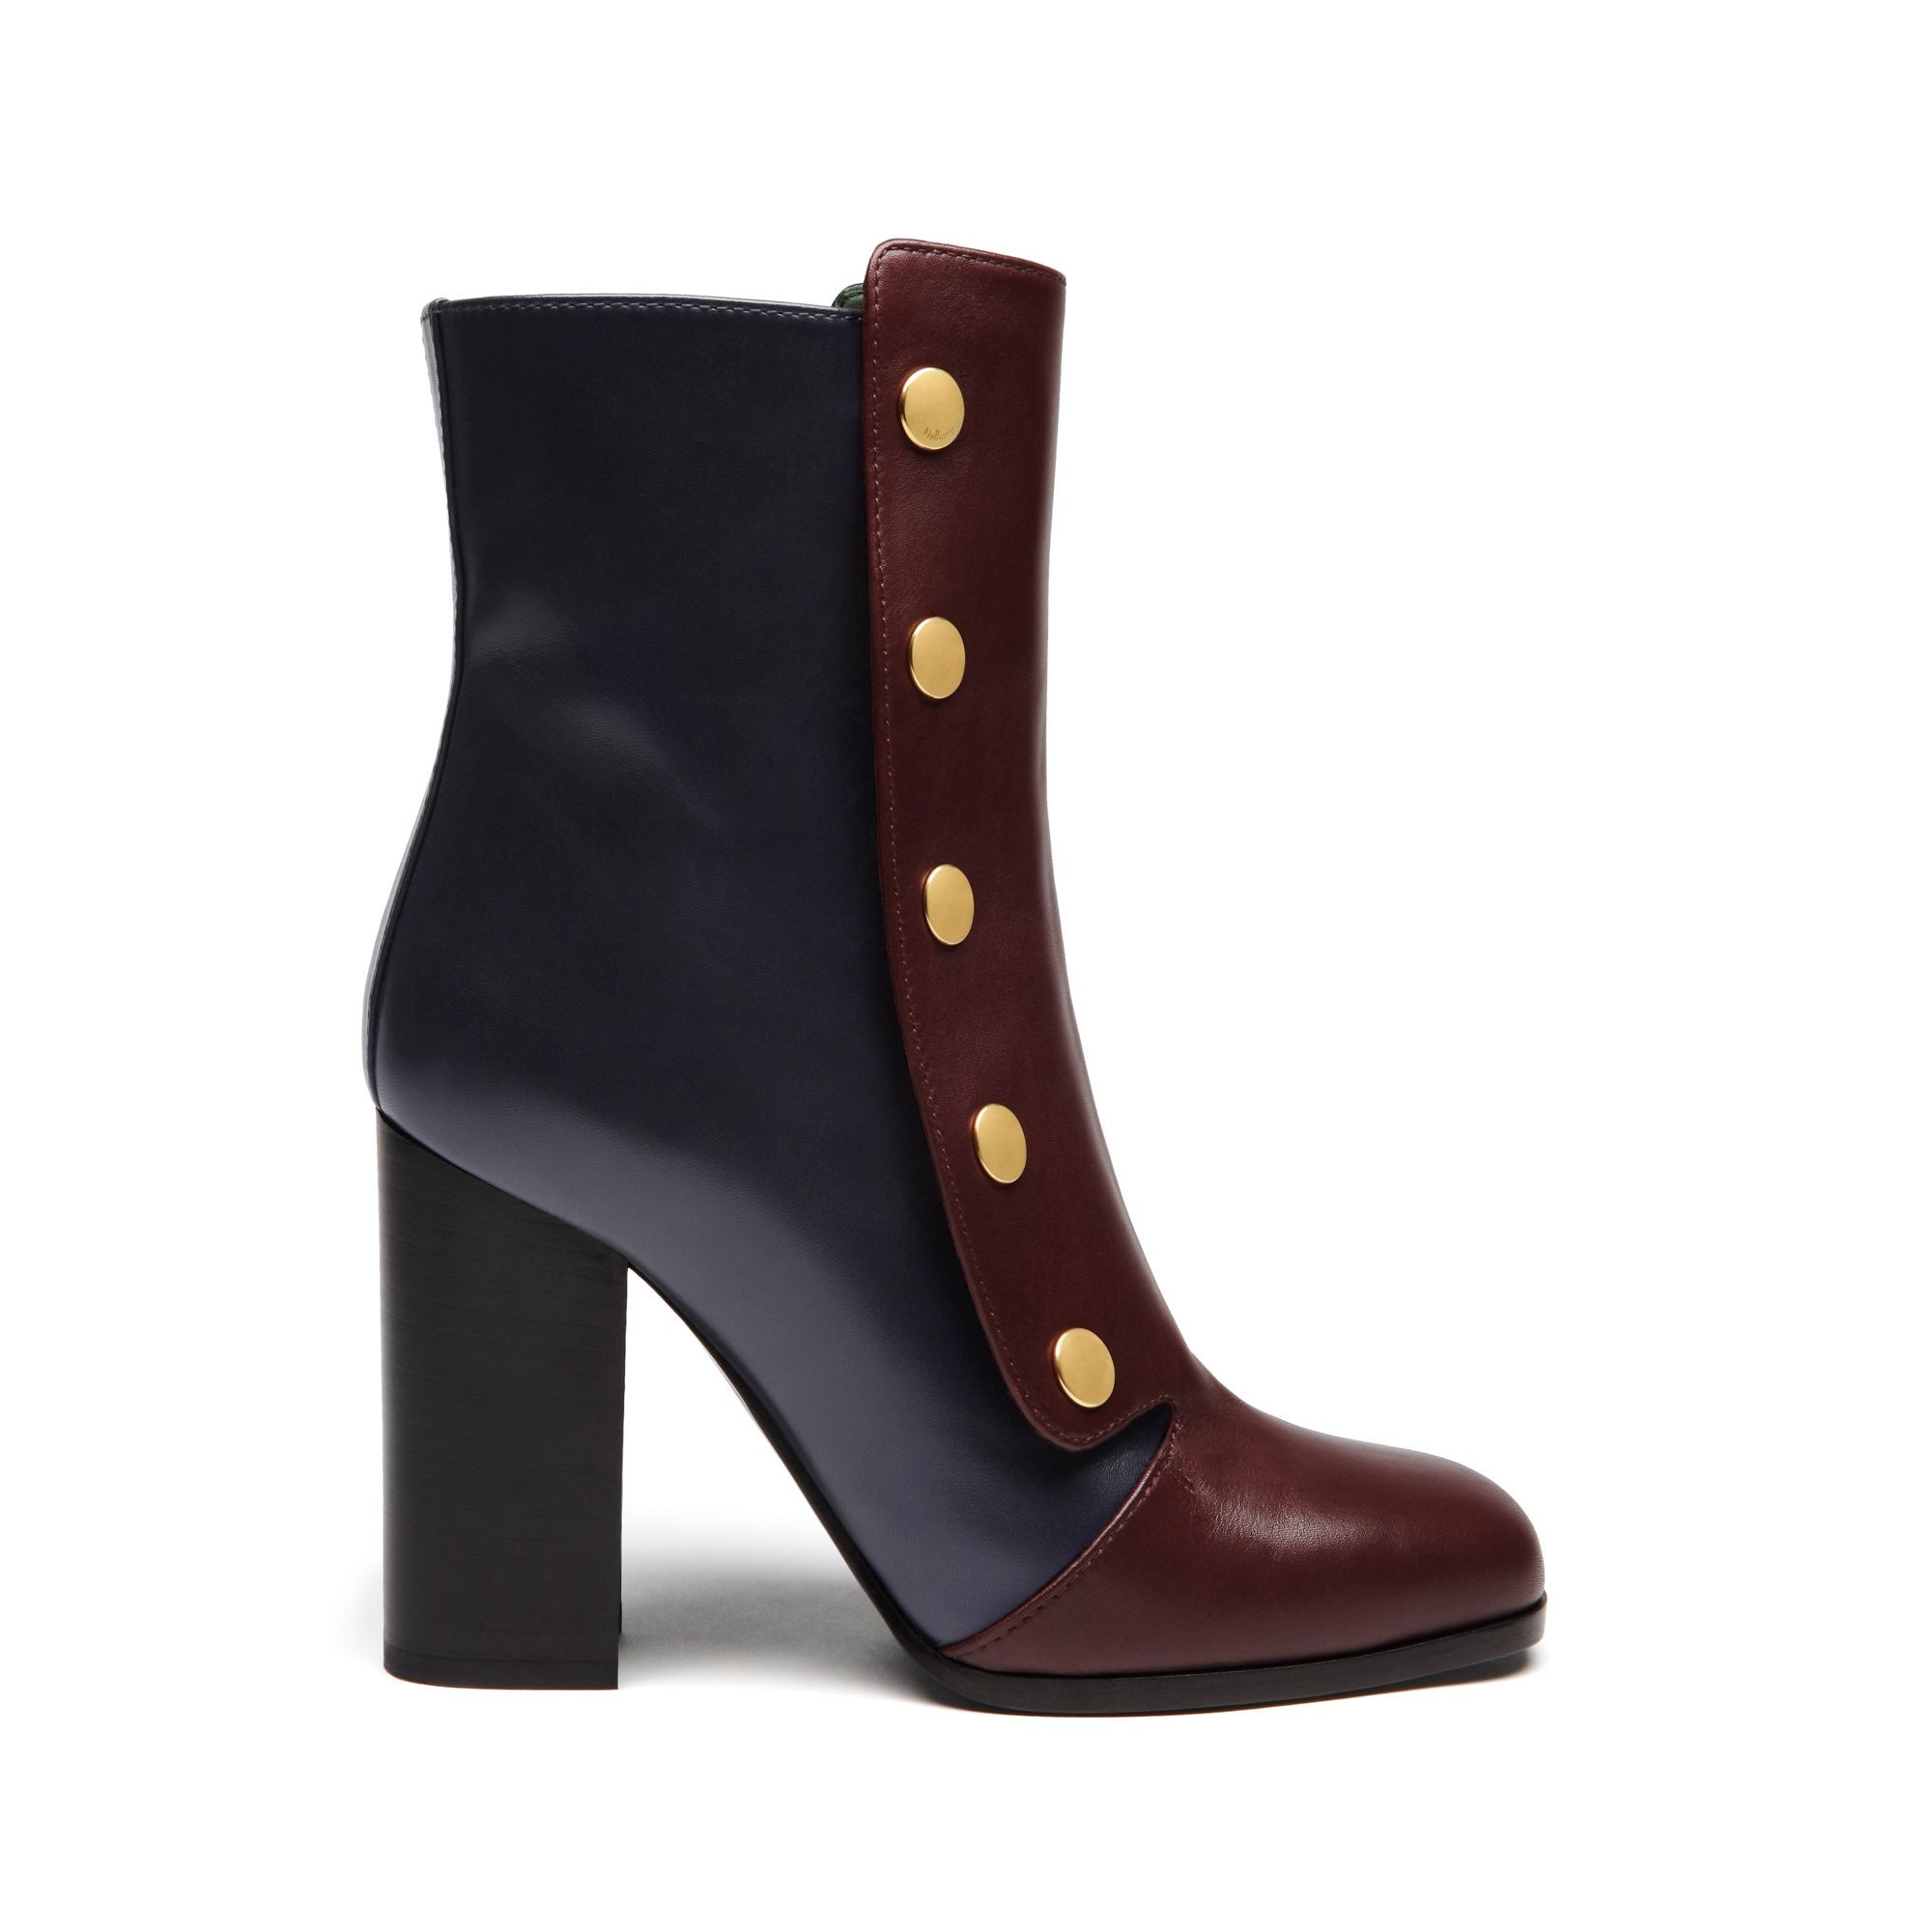 MULBERRY Leather Boots Discount Big Discount abW7xCY